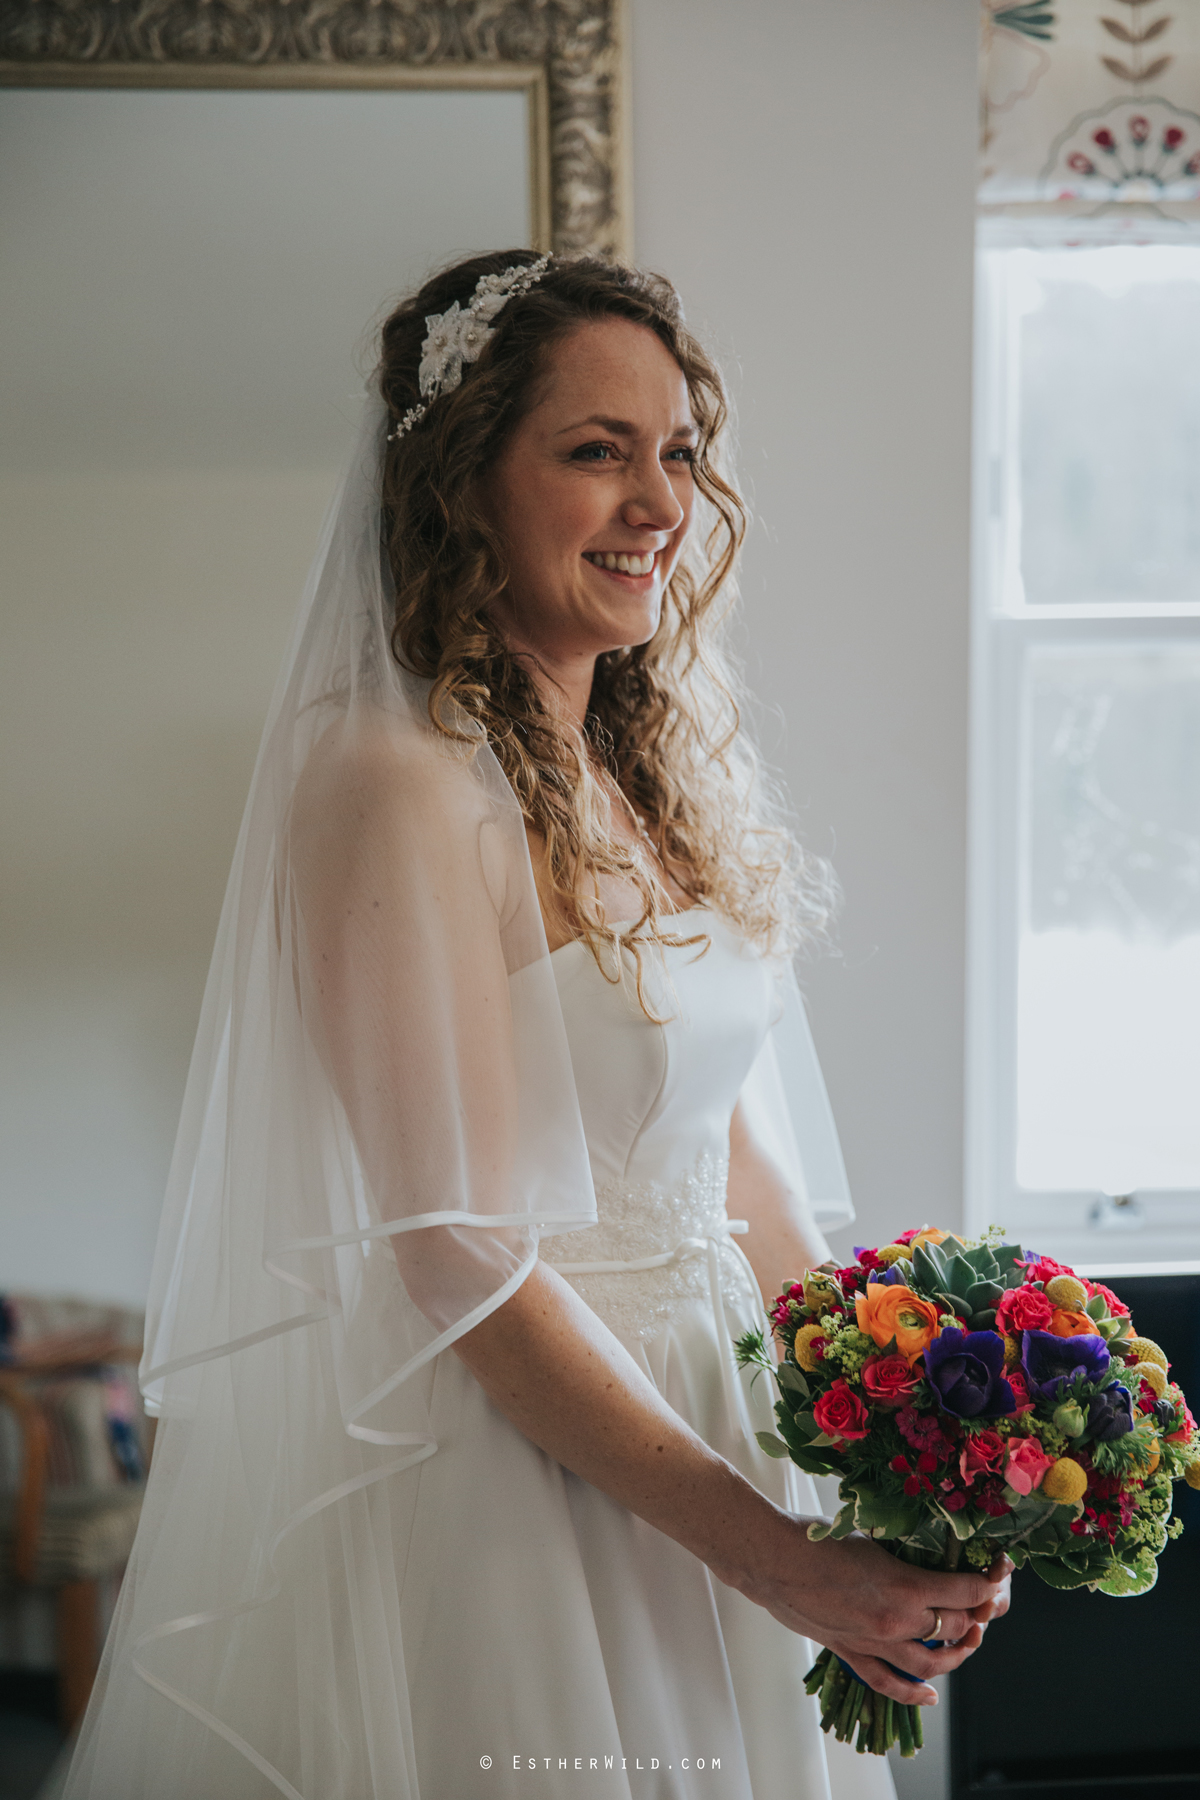 The_BoatHouse_Wedding_Venue_Ormesby_Norfolk_Broads_Boat_Wedding_Photography_Esther_Wild_Photographer_IMG_0628.jpg